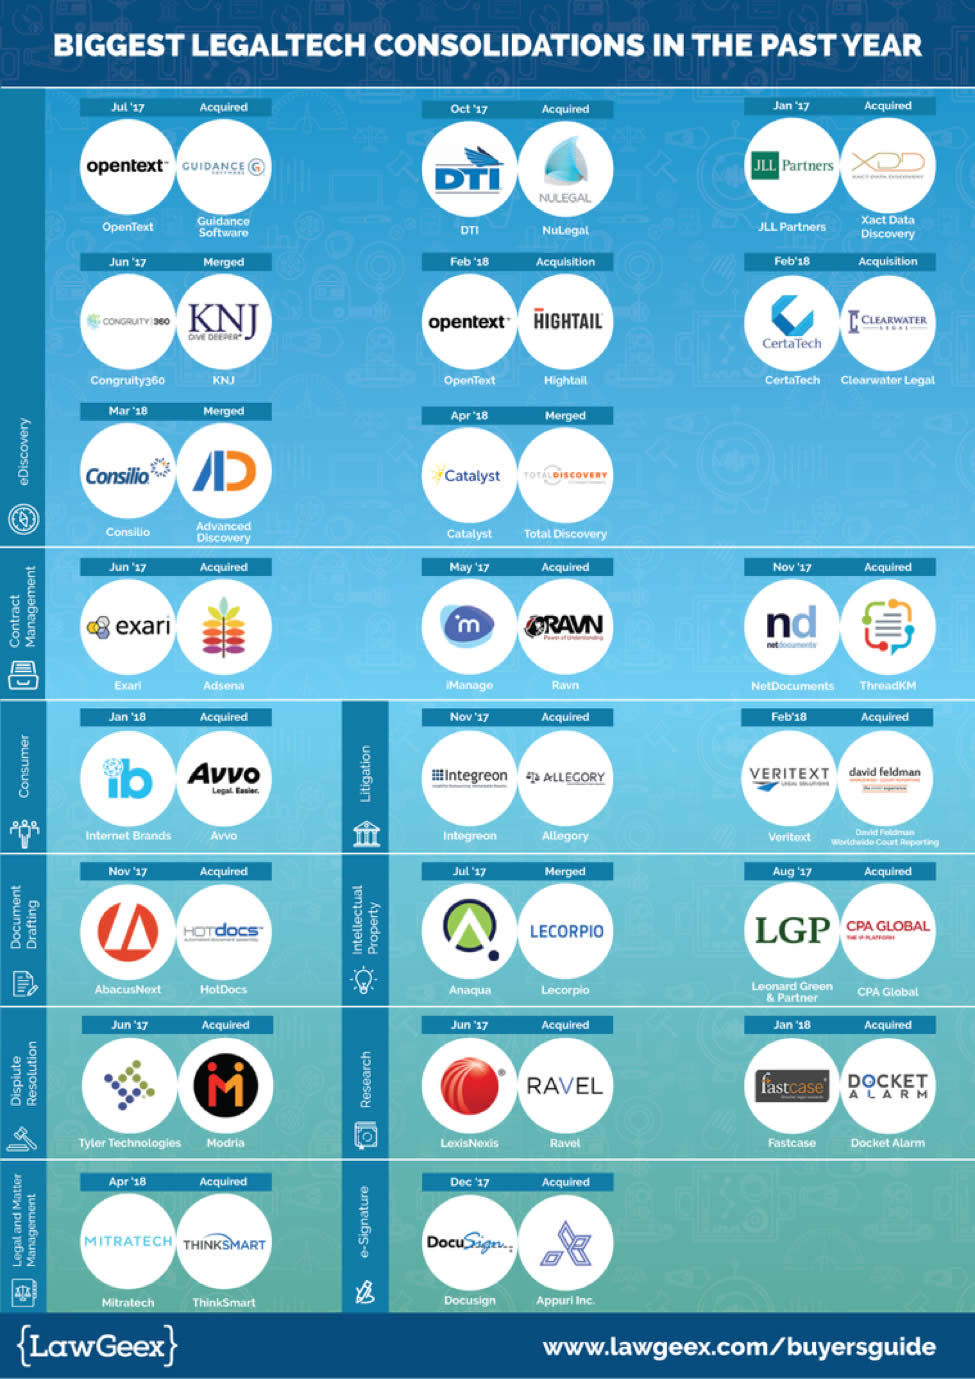 LegalTech Consolidations